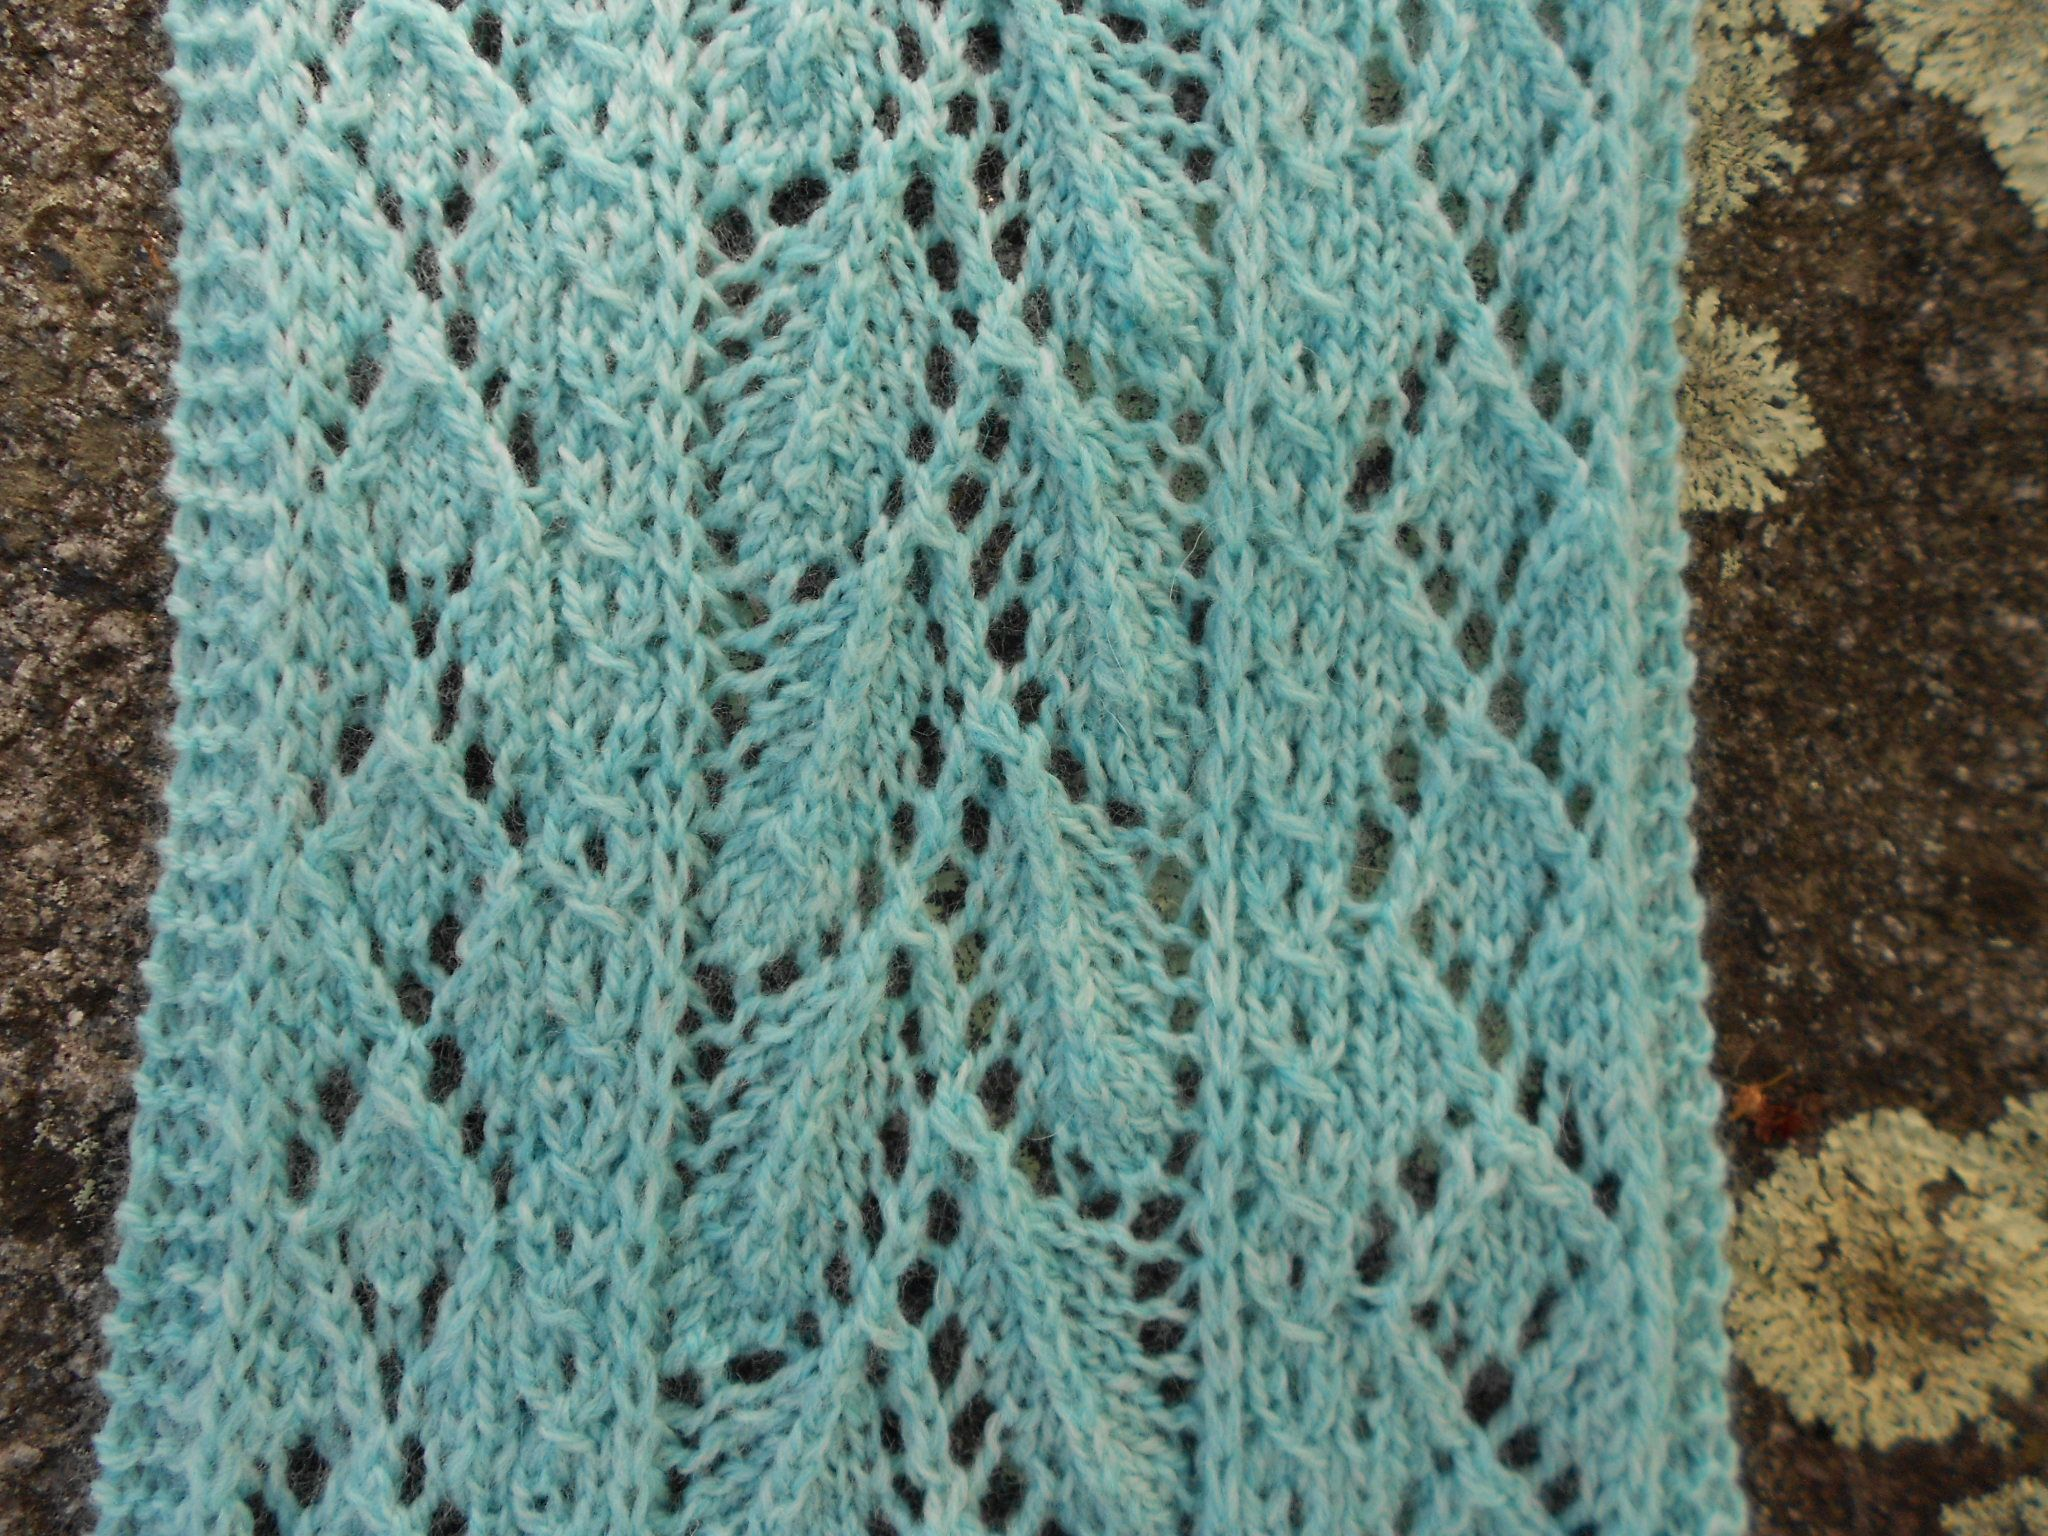 Mint Lace Scarf Pattern - Knitting Patterns and Crochet Patterns ...